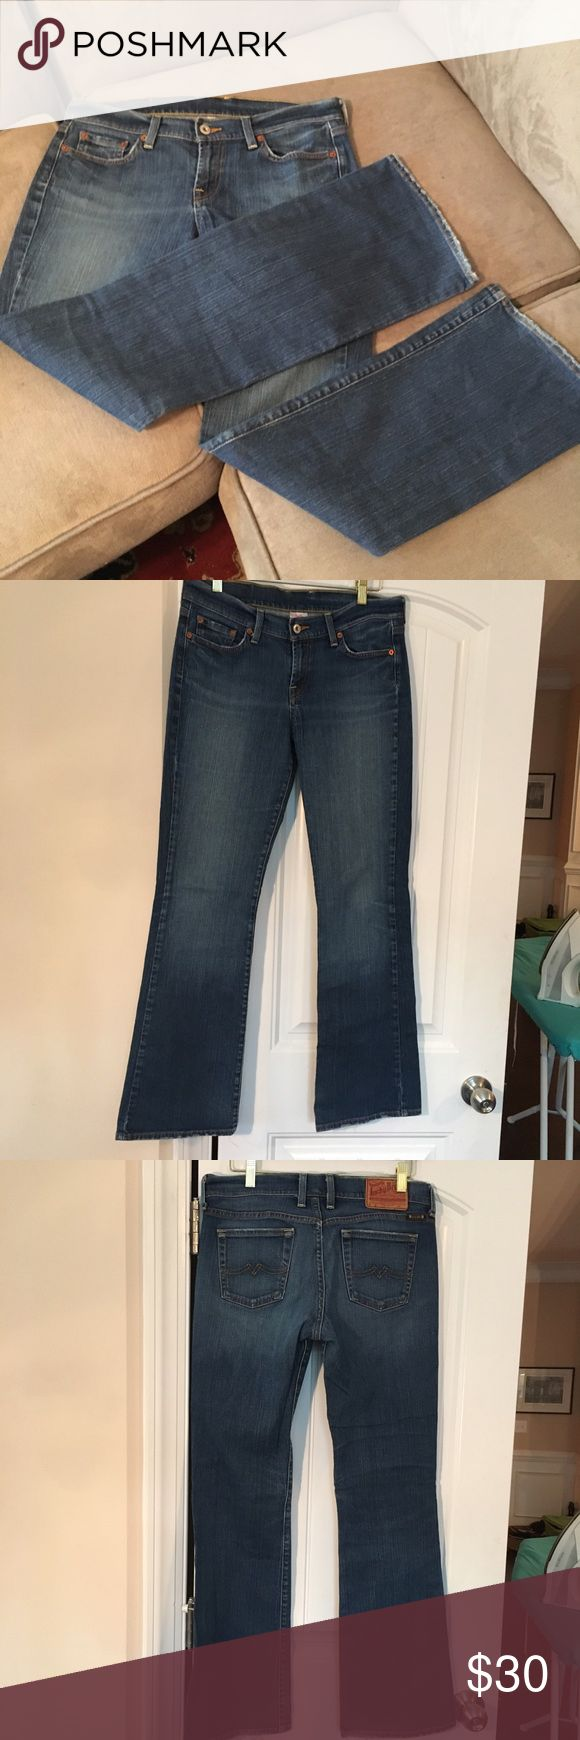 """Lucky Brand 🍀 jeans Sweet N Low sz 28 Lucky Brand 🍀 Dungarees women's jeans. EUC style Sweet N' Low, size 28, inseam 31"""" Lucky Brand Jeans Boot Cut"""